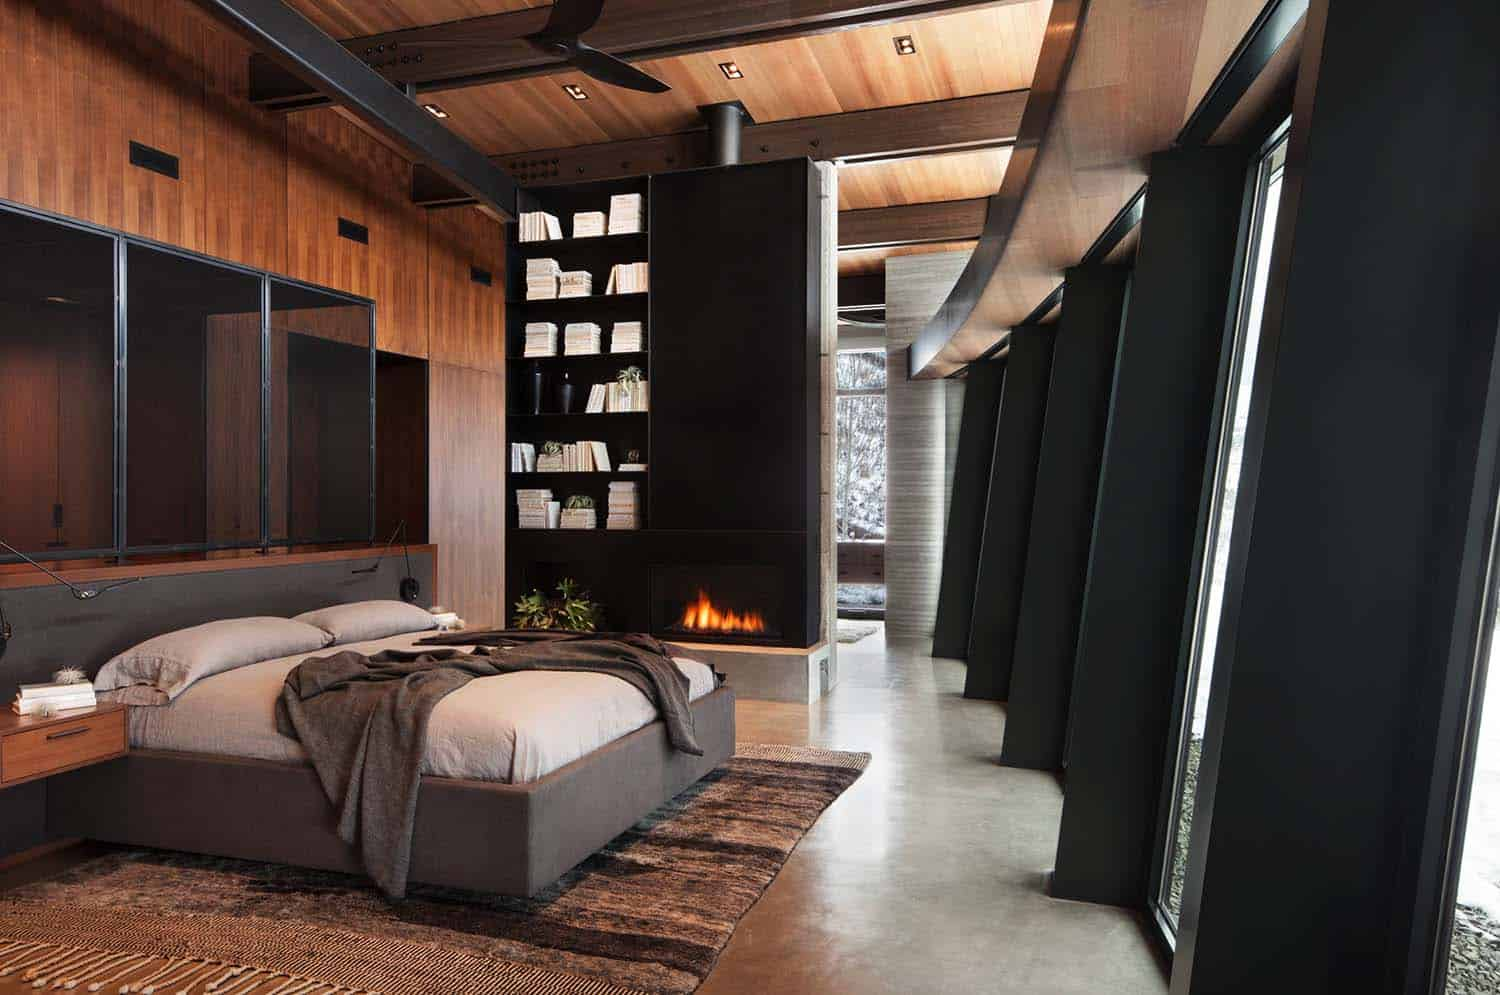 Contemporary Mountain Residence-RKD Architects-05-1 Kindesign